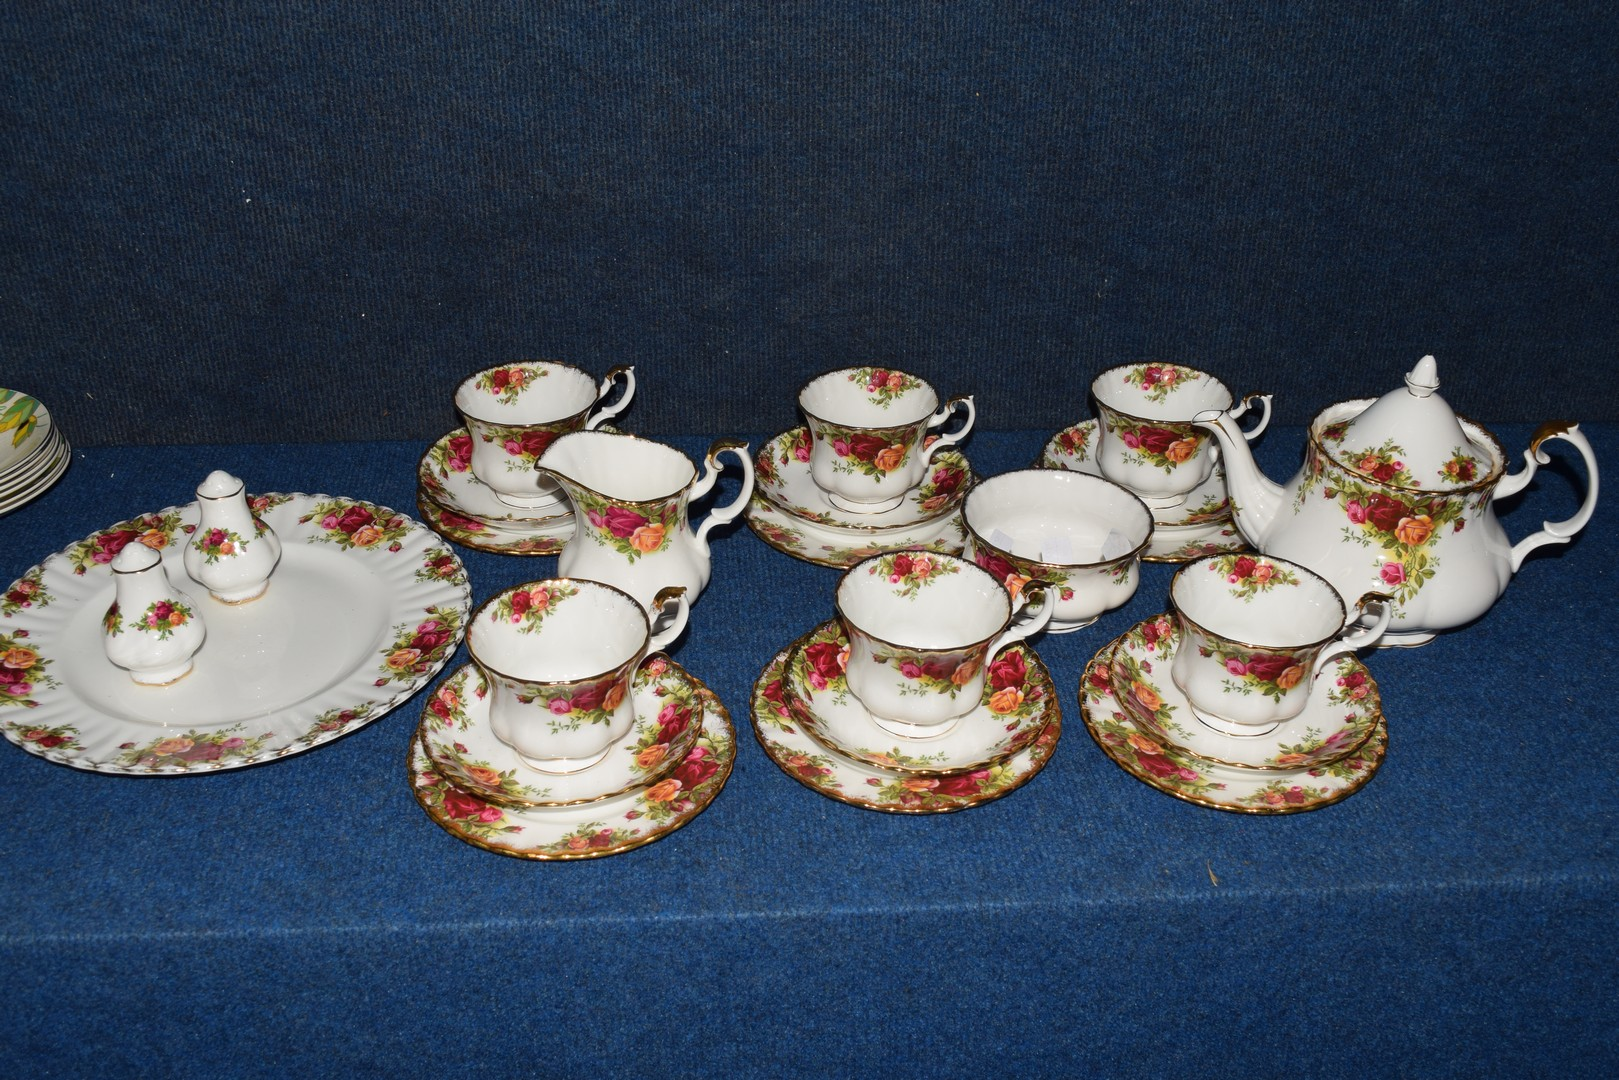 Royal Albert tea set in the Old Country Roses pattern - Image 4 of 4